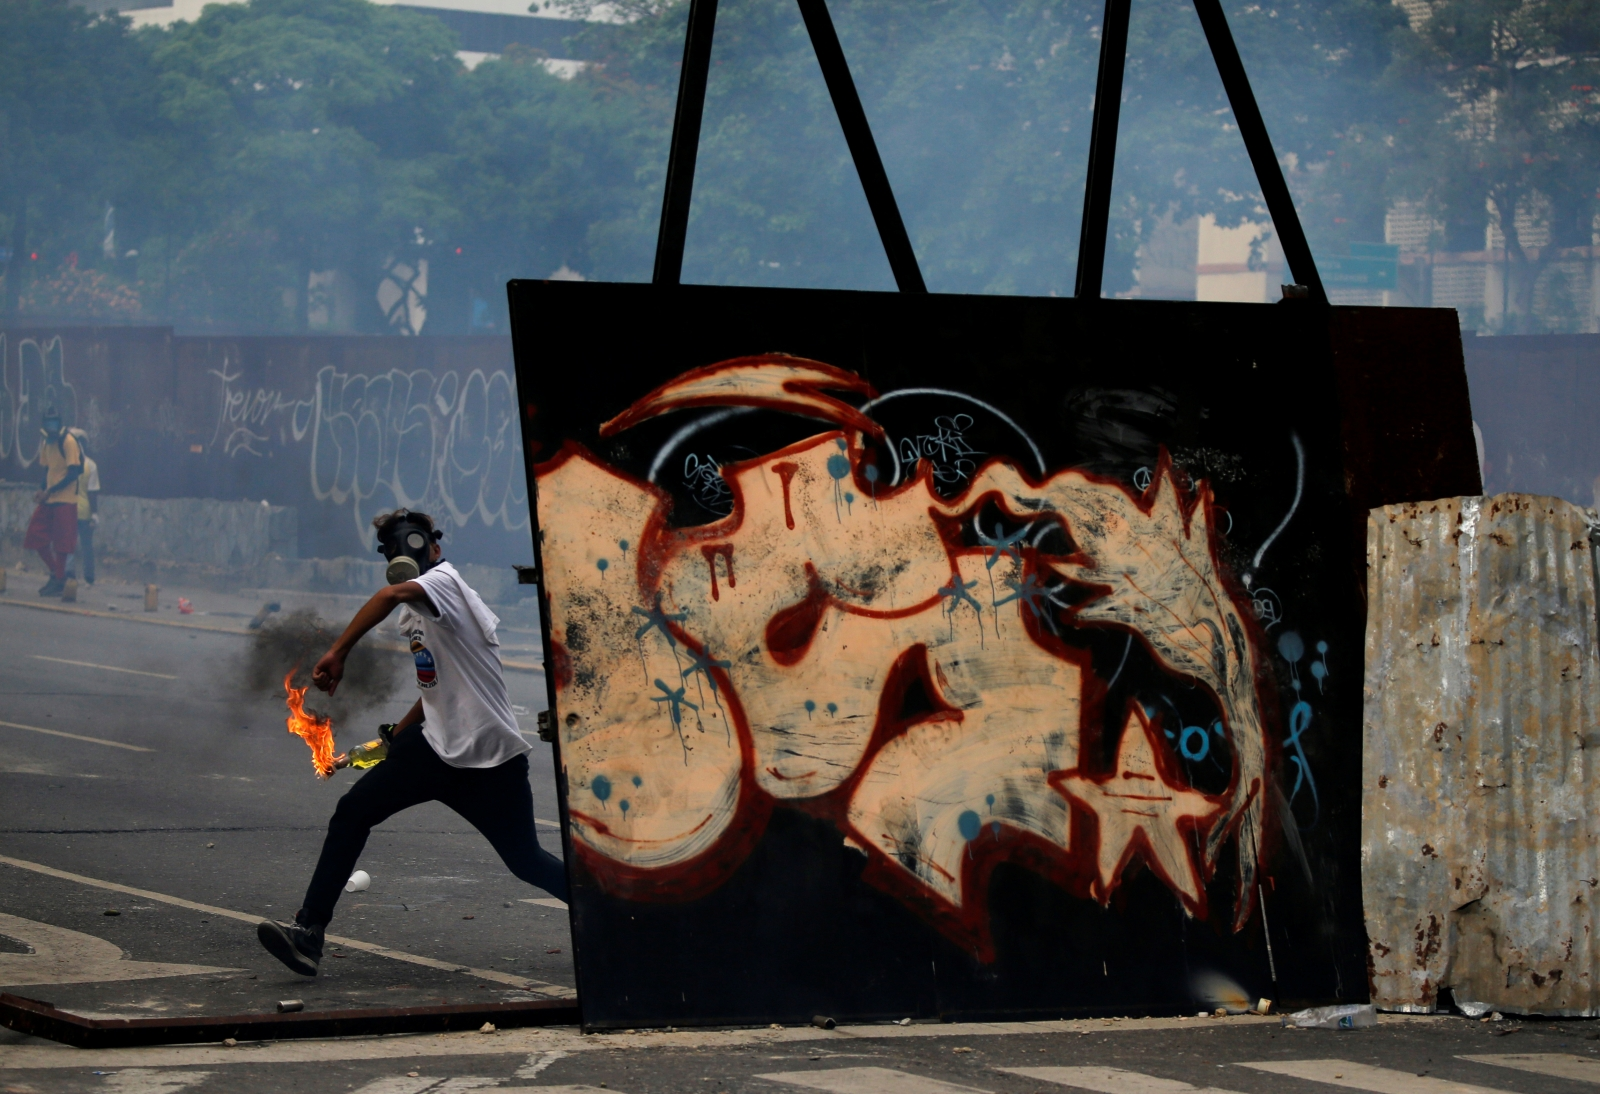 European Union urges Venezuela to 'de-escalate' deadly protest tensions